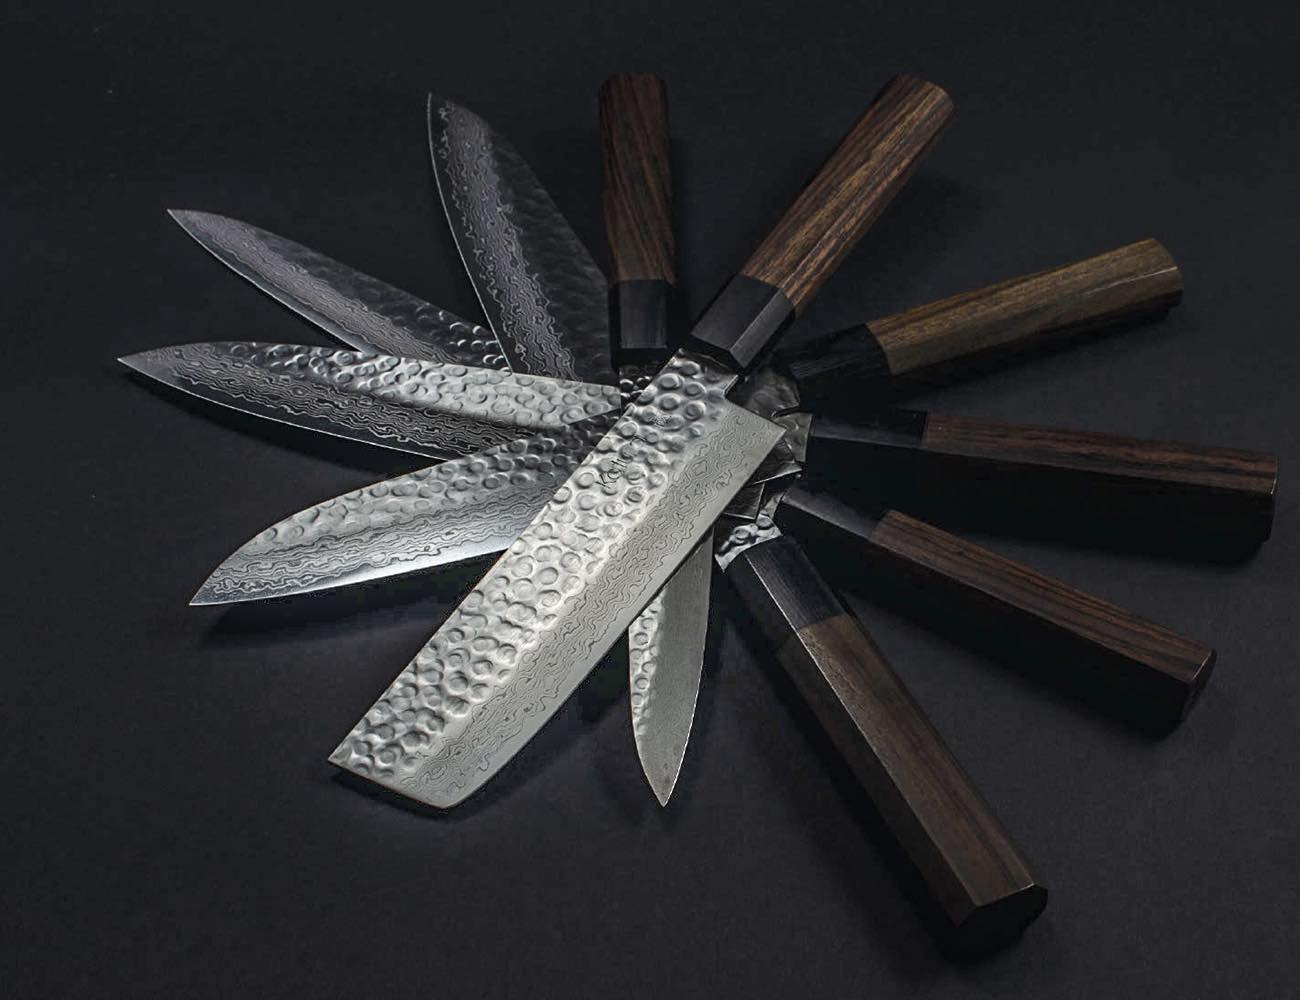 KATURA Premium Japanese Knife Collection